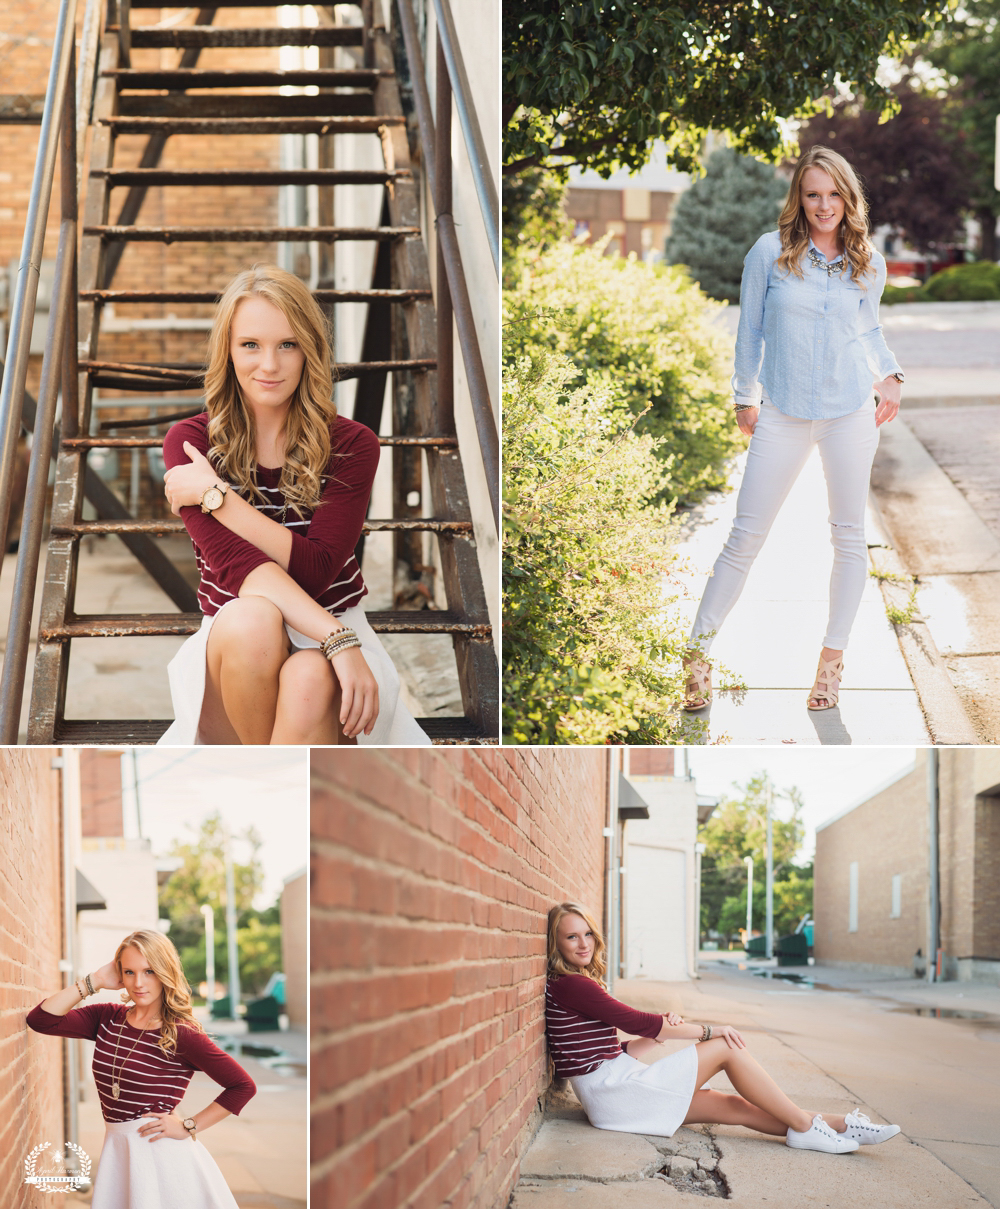 senior-photography-gardencity-ks-13.jpg